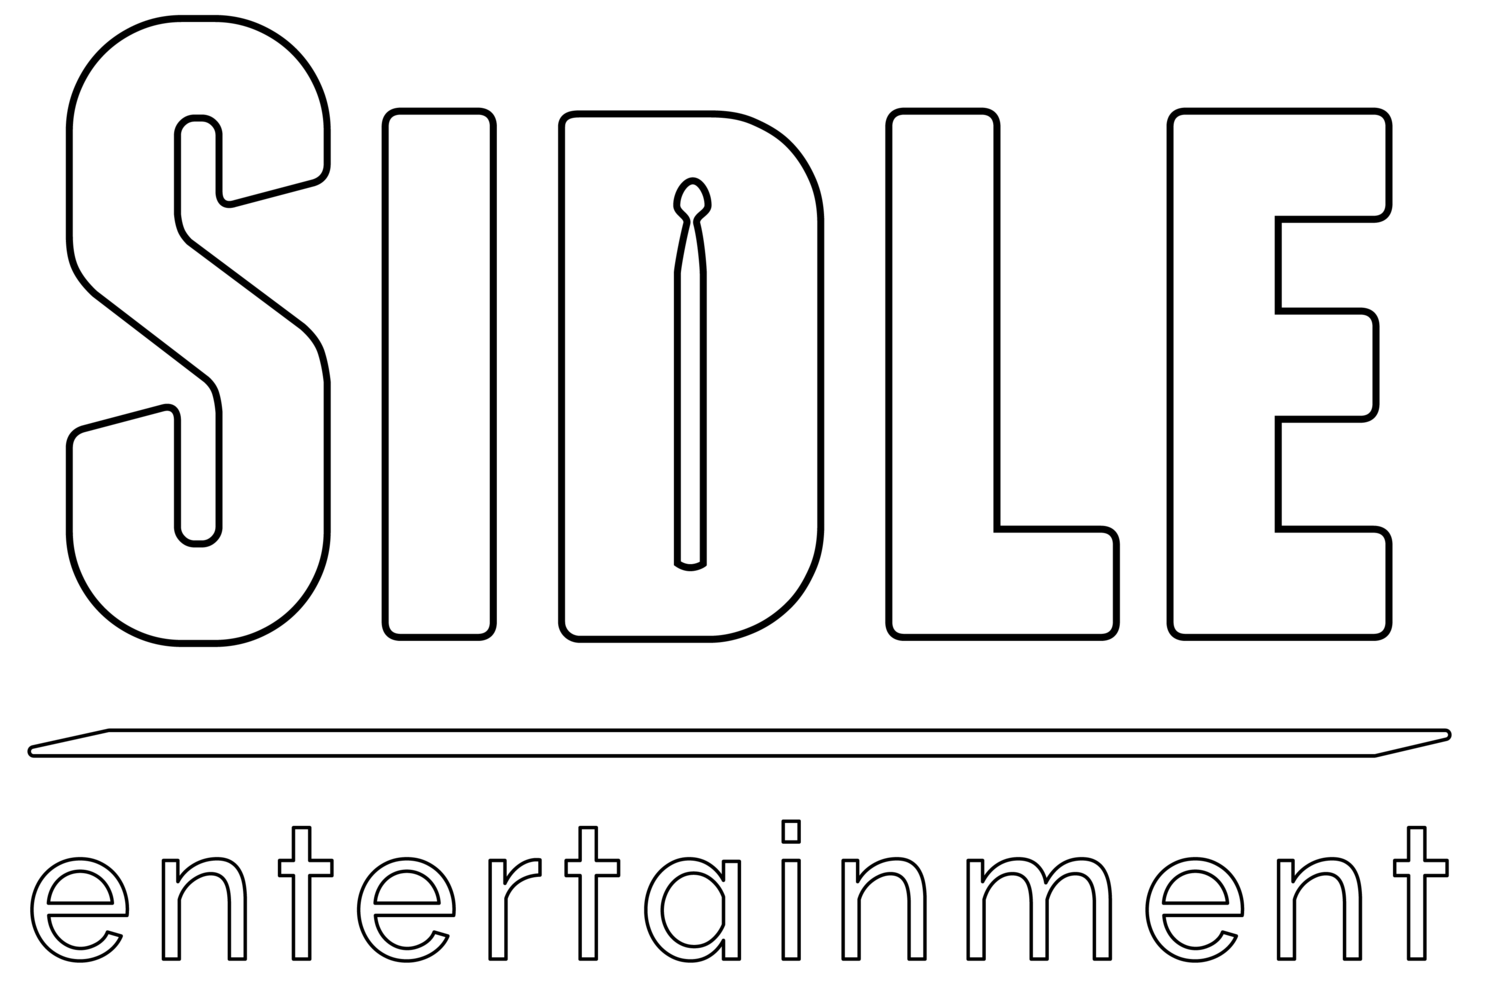 Sidle Entertainment